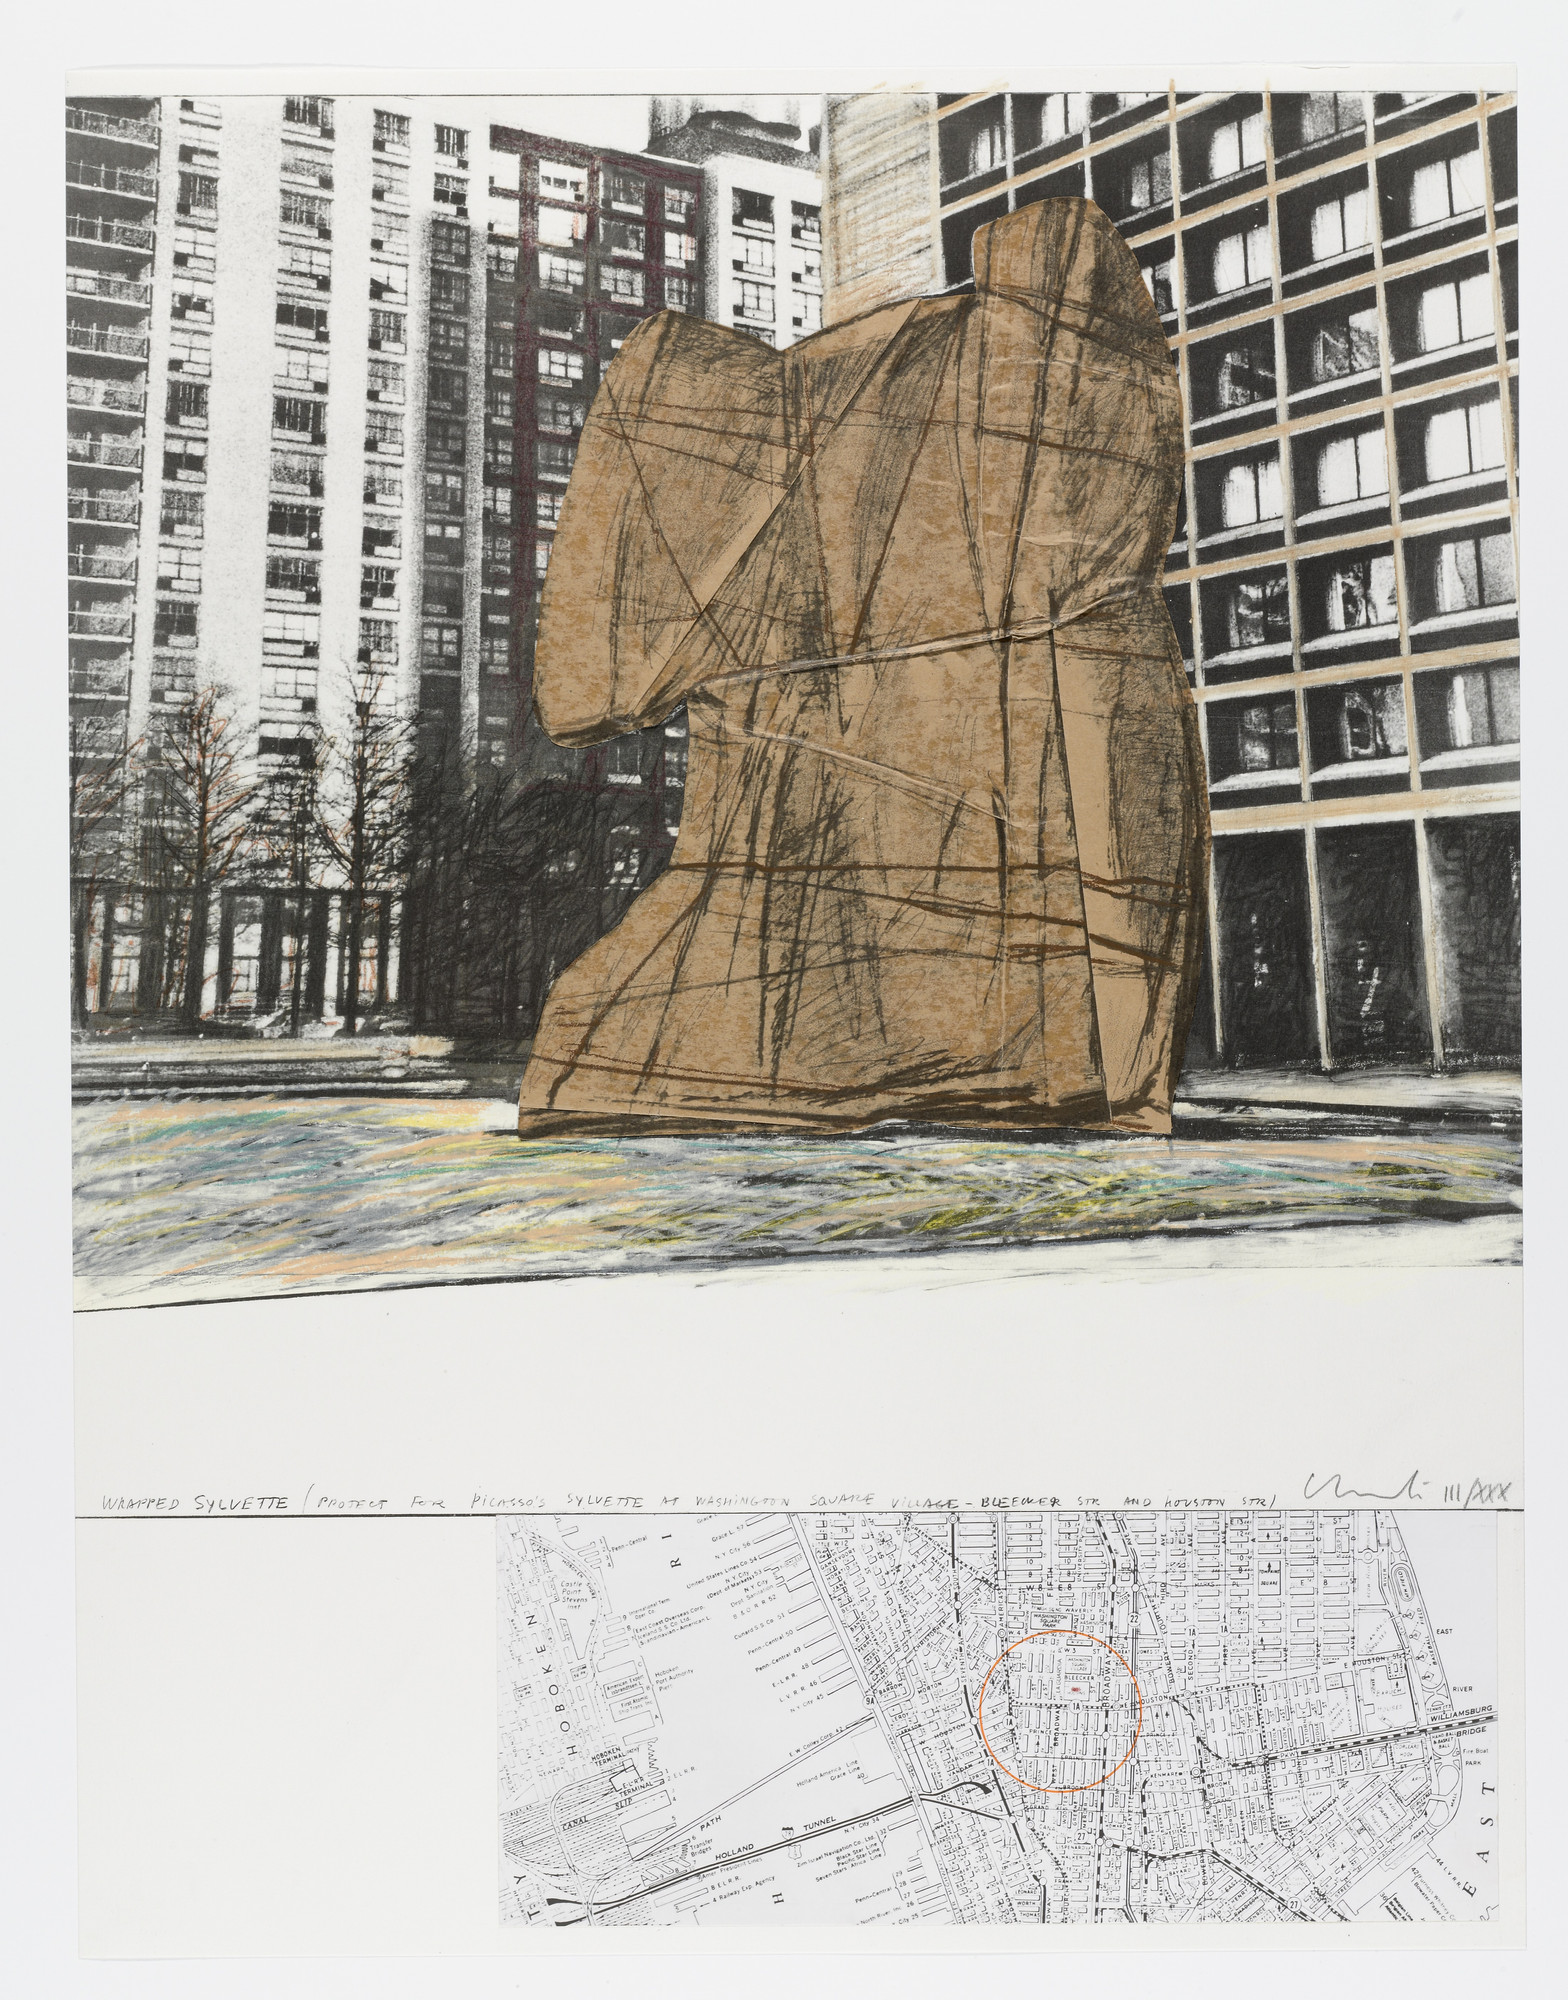 Christo. Wrapped Sylvette, Project for Washington Square Village, New York from Homage to Picasso (Hommage à Picasso). 1972, published 1973